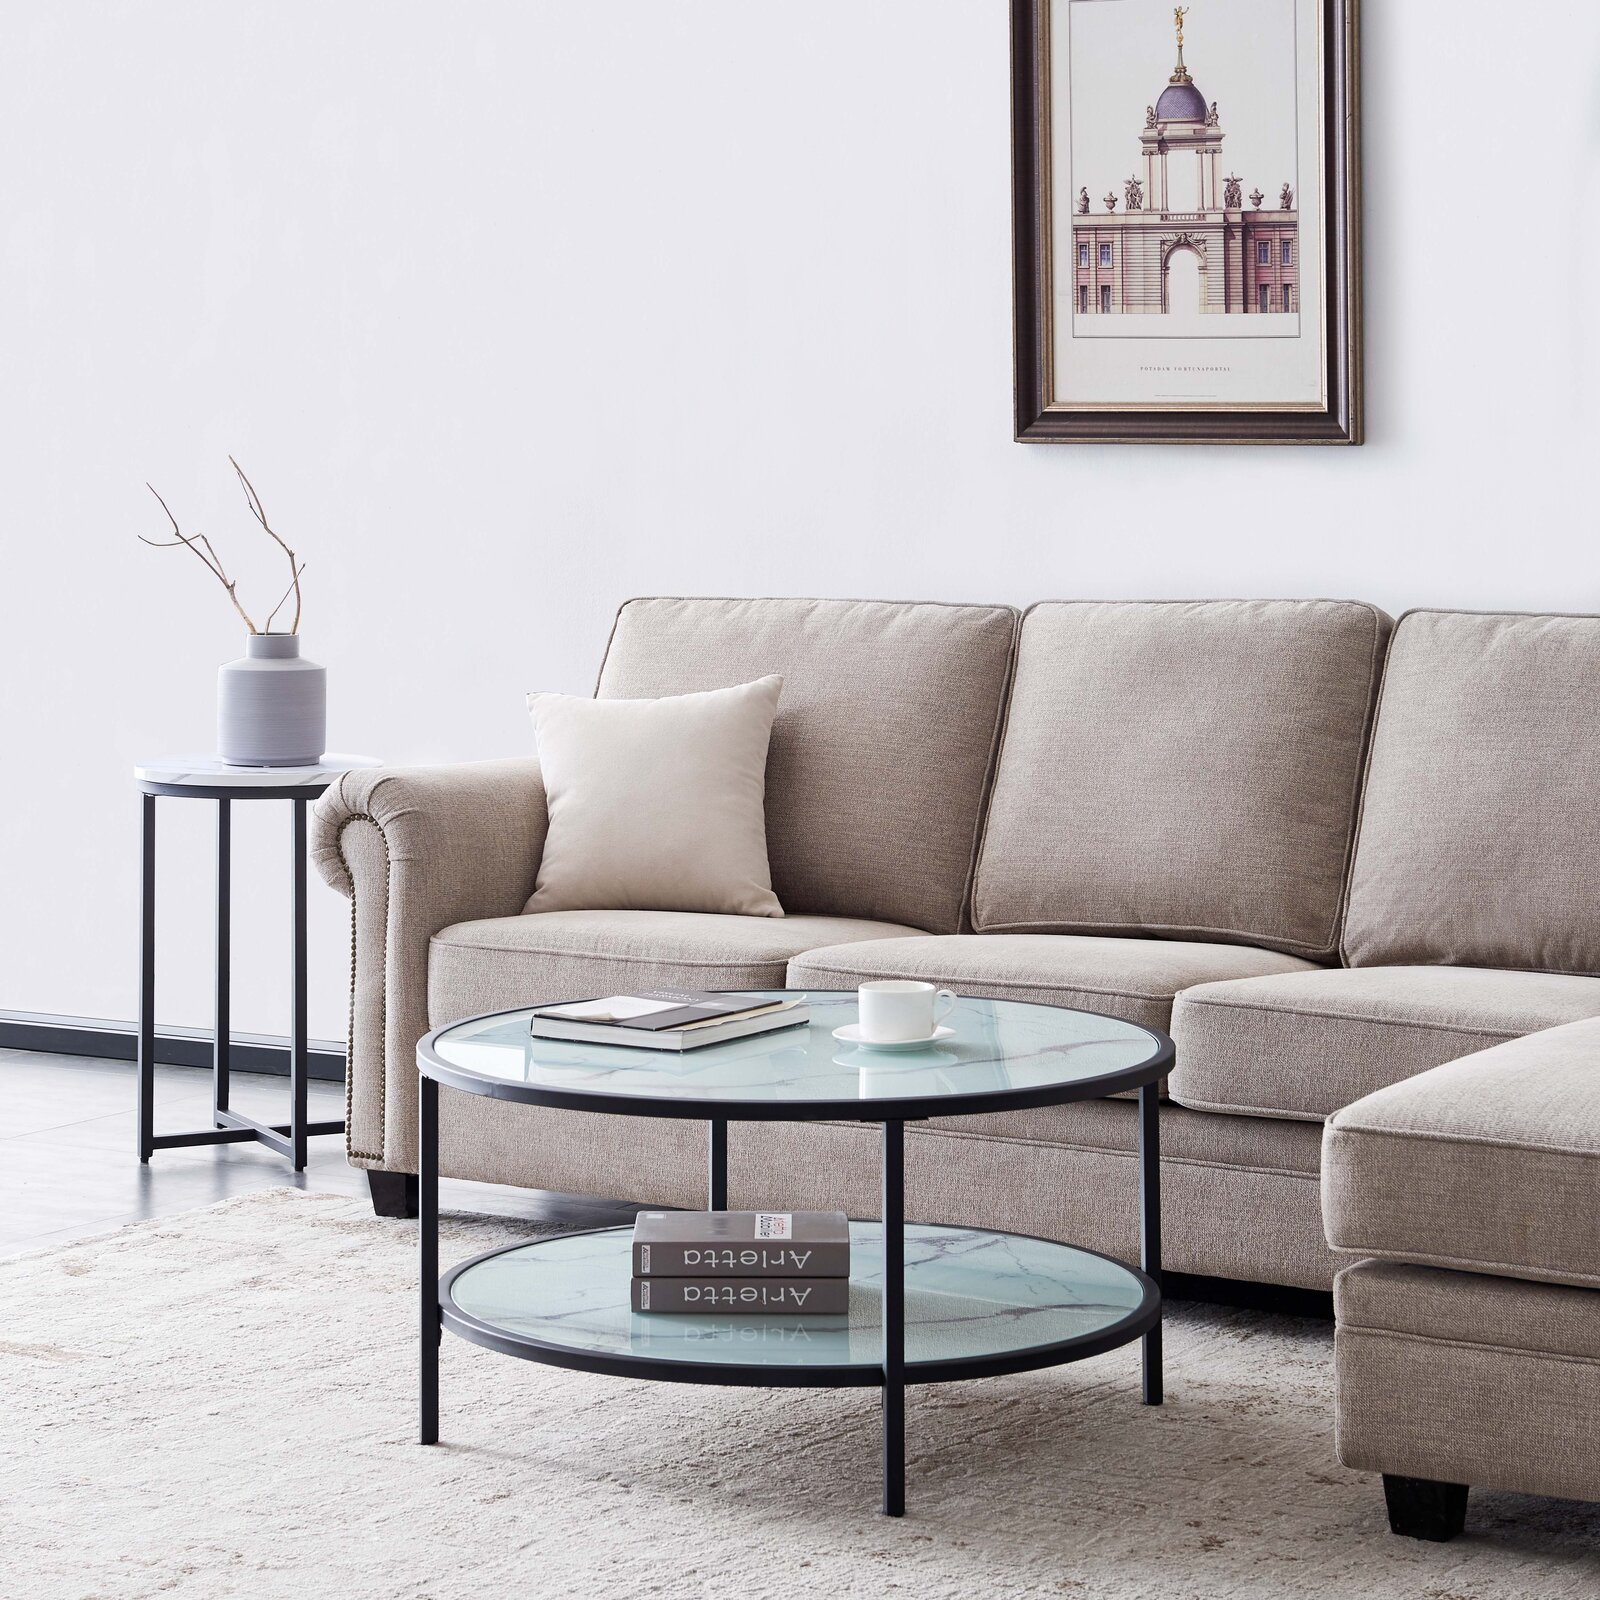 white-glass-coffee-table-with-faux-marble-look-unique-durable-living-room-furniture-designs-for-modern-decor